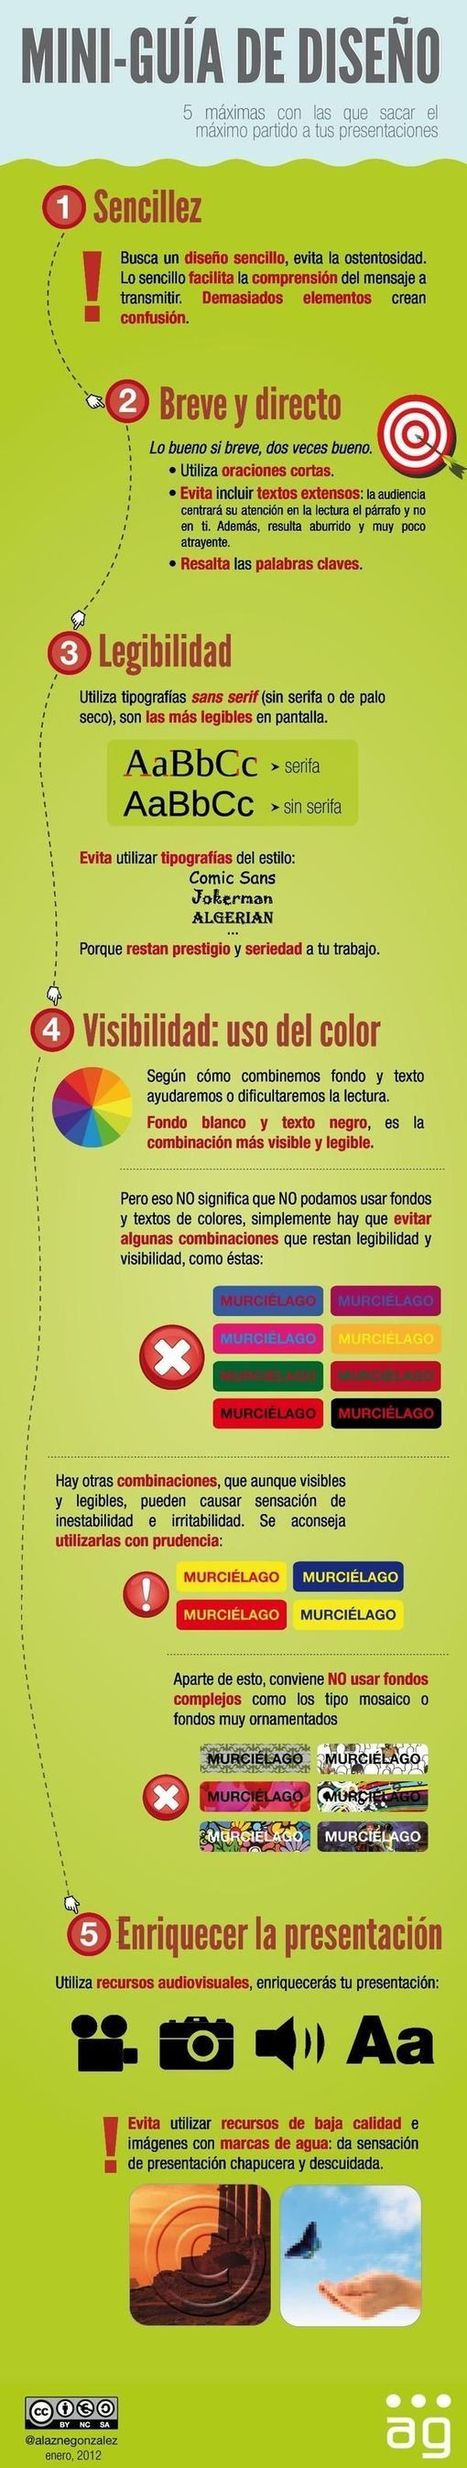 ¿Cómo crear excelentes presentaciones en Power Point? [Infografía] | Café puntocom Leche | Scoop.it